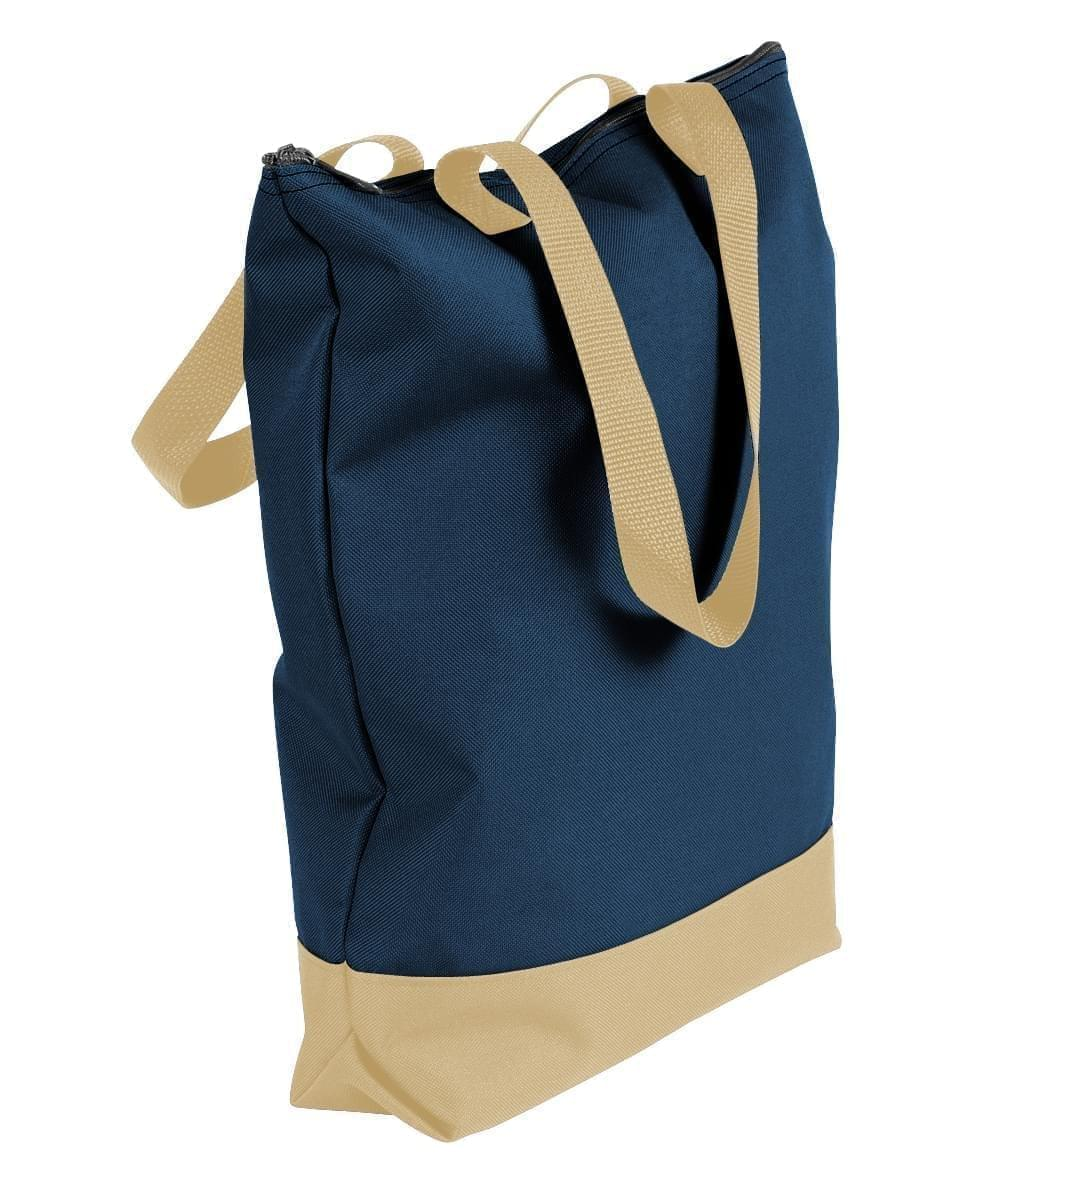 USA Made Canvas Portfolio Tote Bags, Navy-Khaki, 1AAMX1UACX